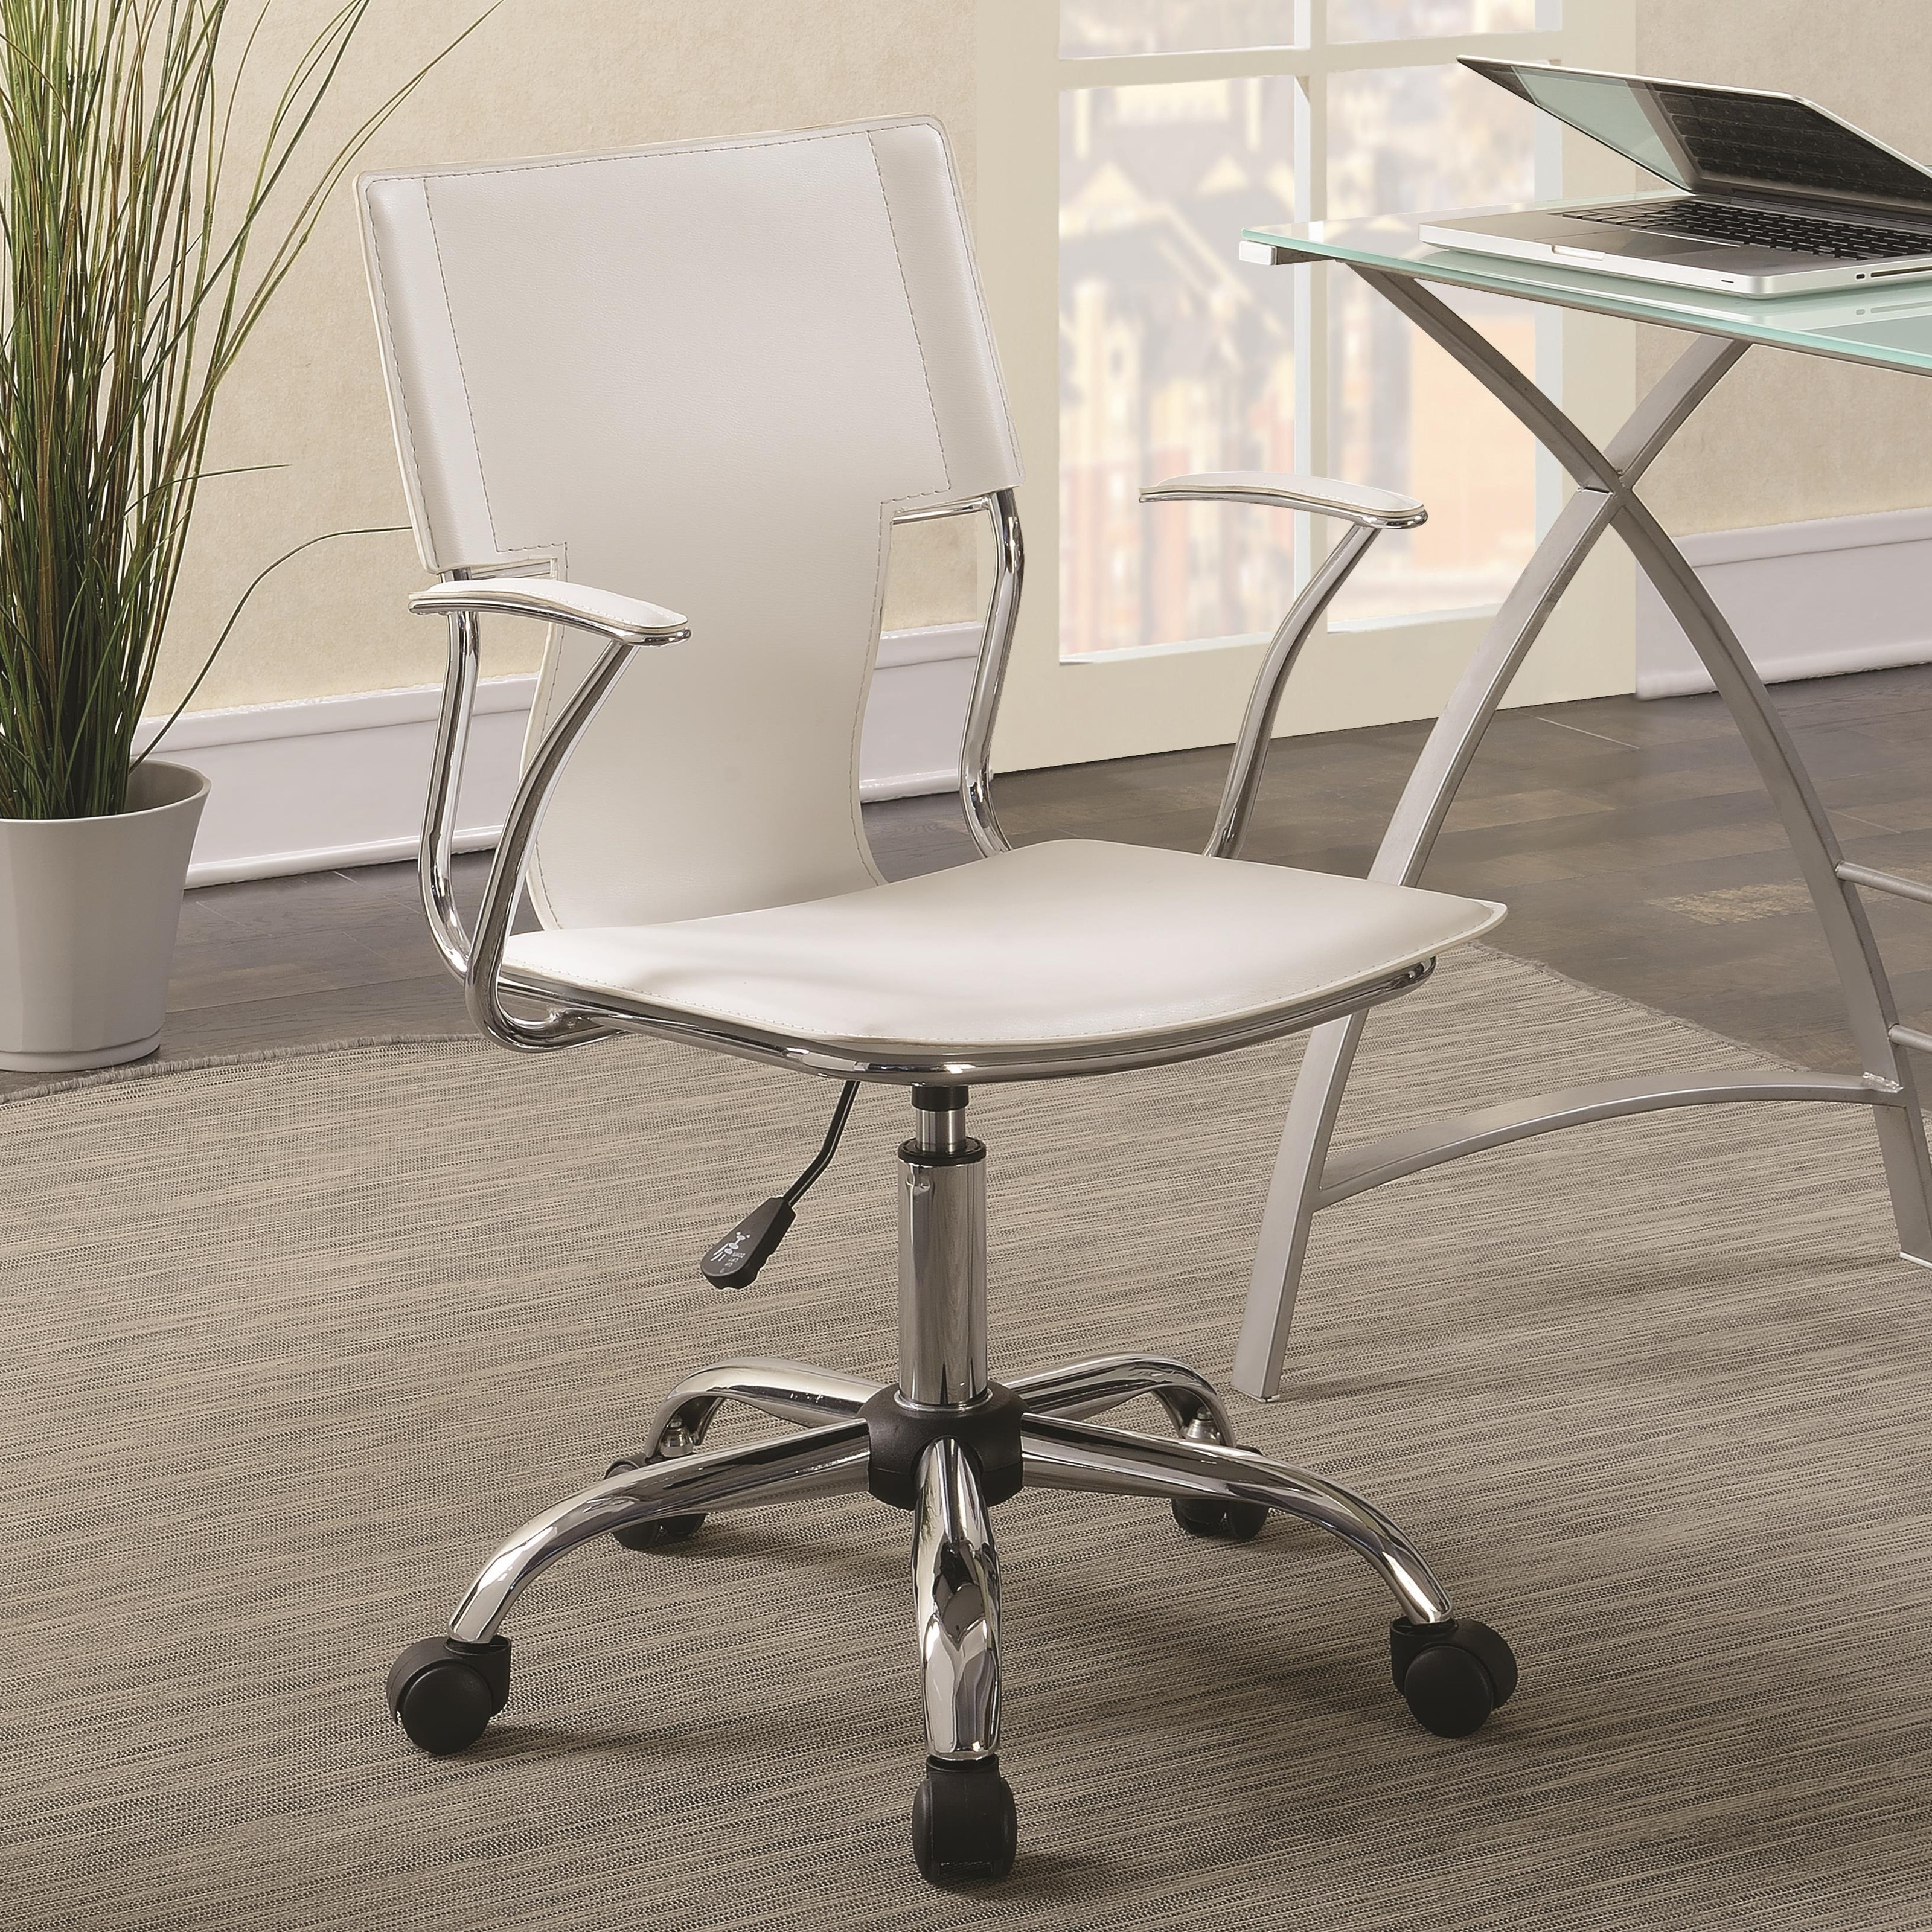 Contemporary Office Chair with Upholstered Seat